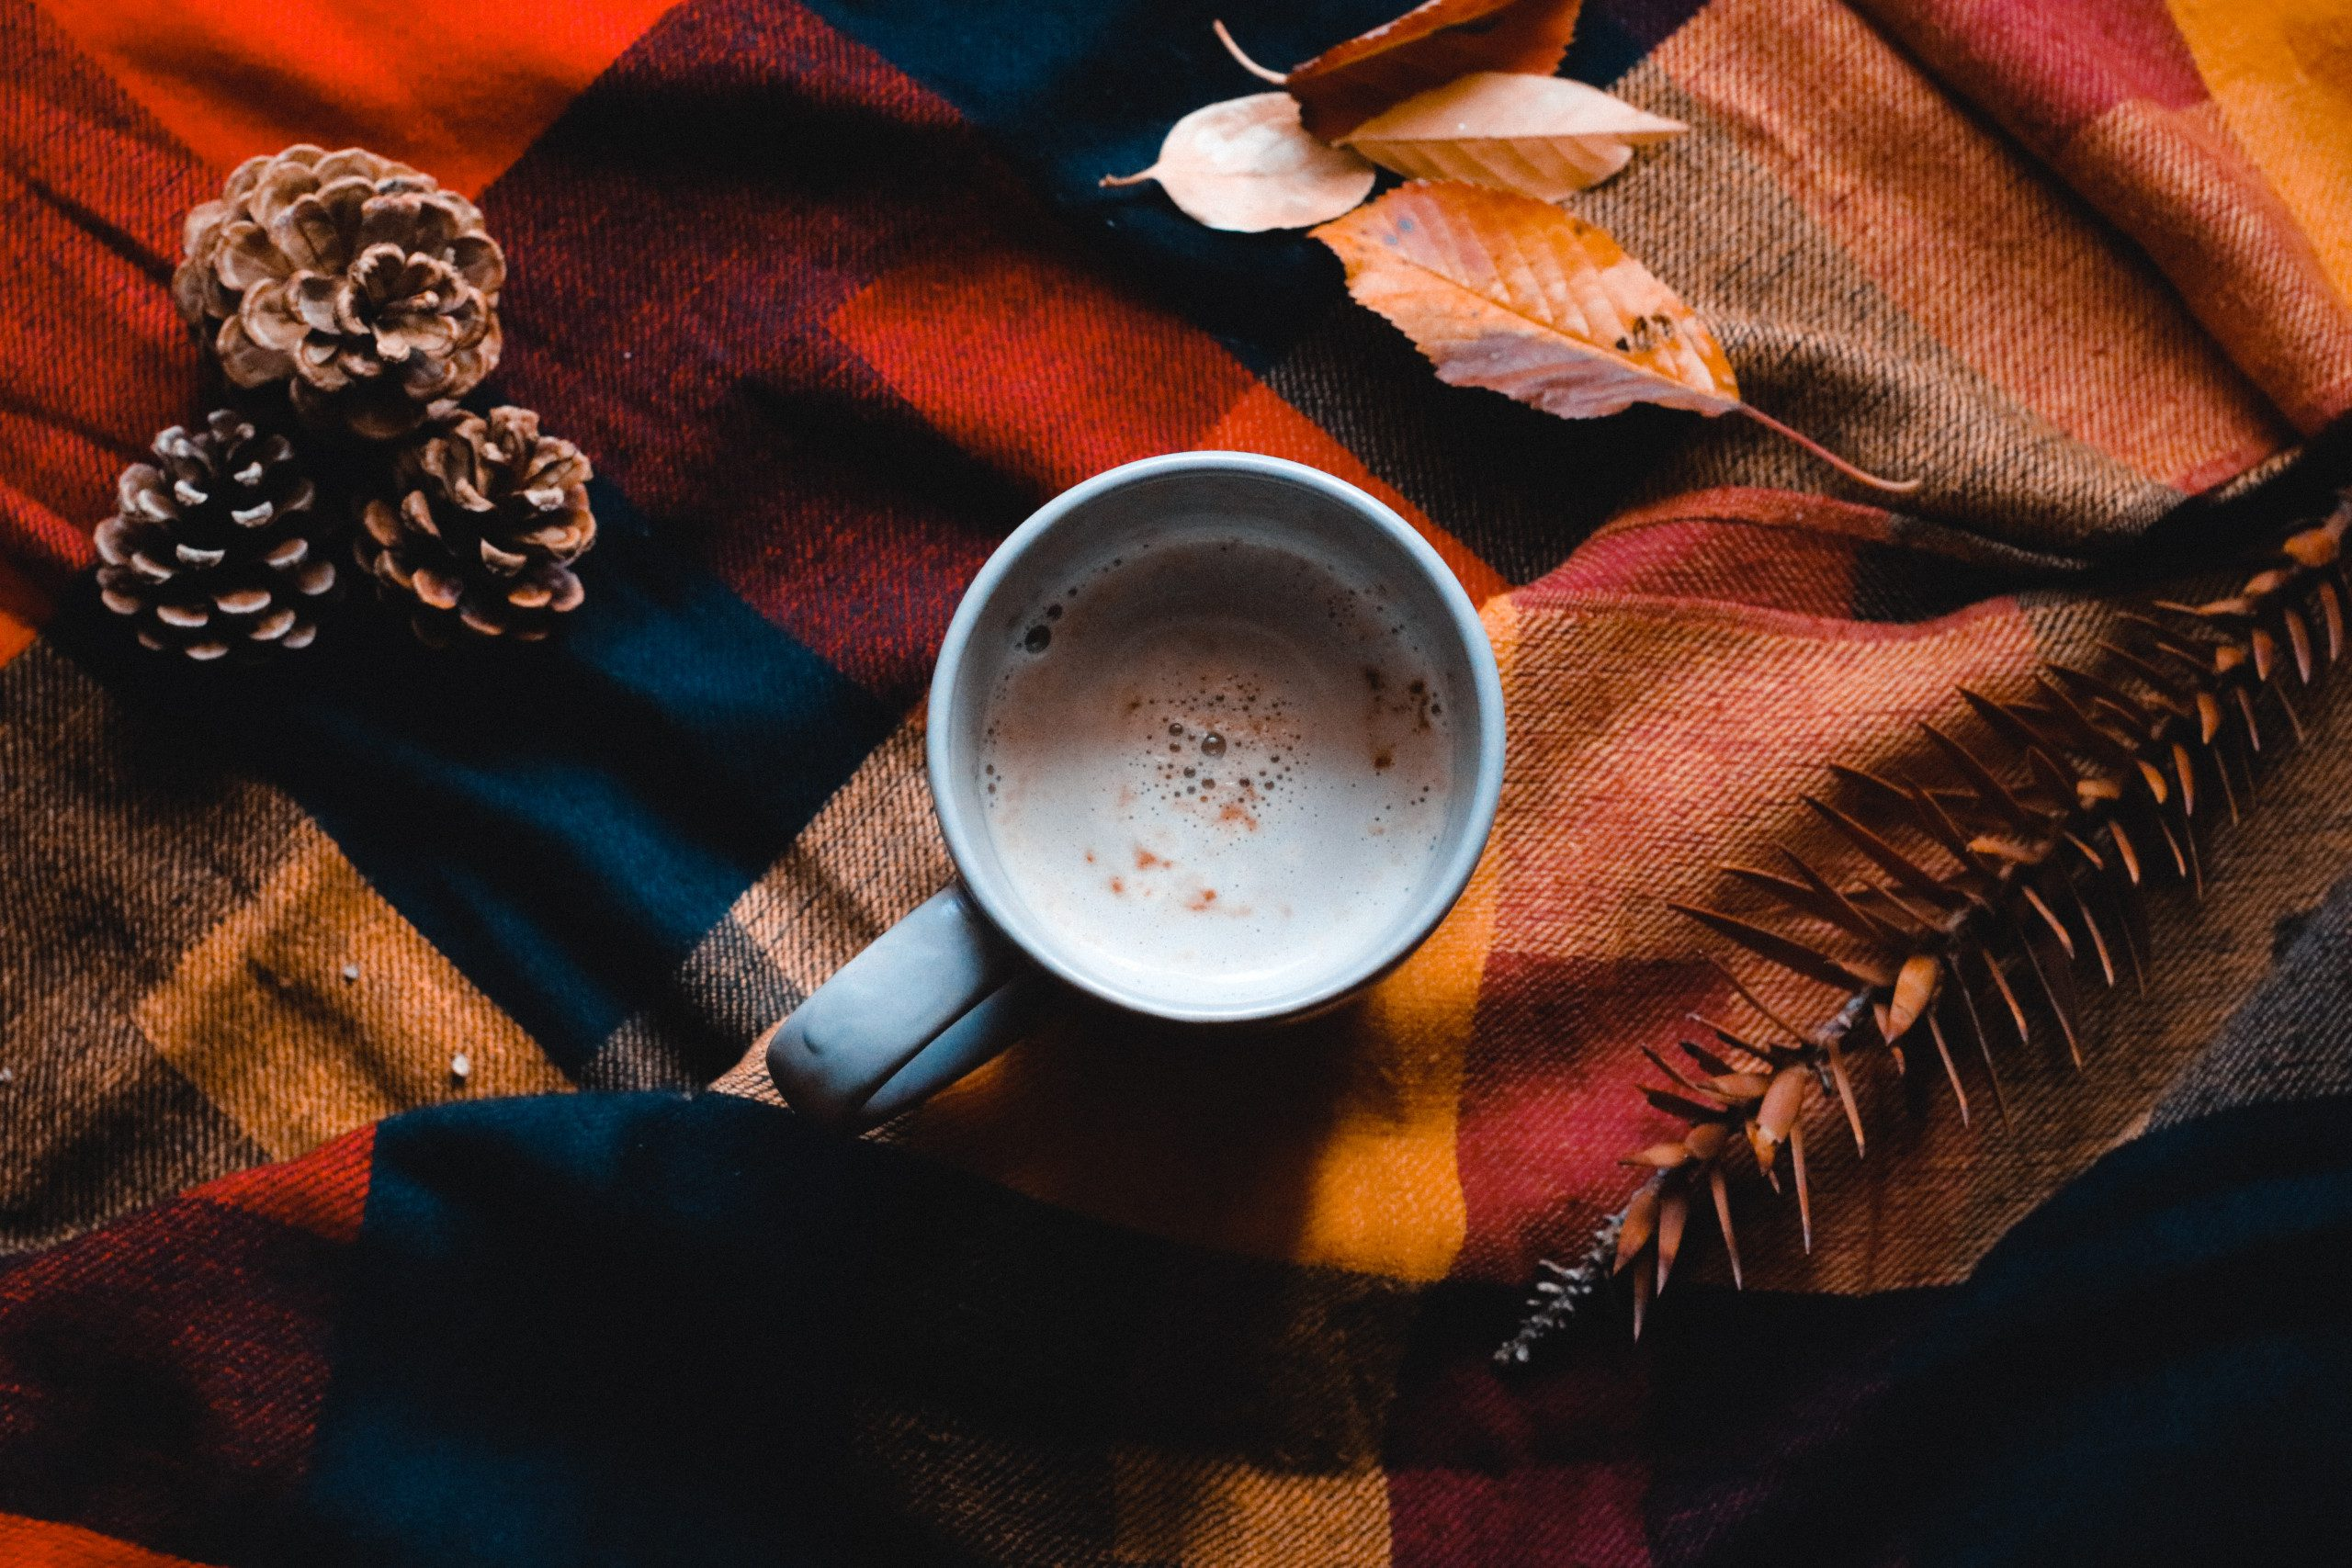 Fall Tartan Blanket With Coffee And Fall Leaves